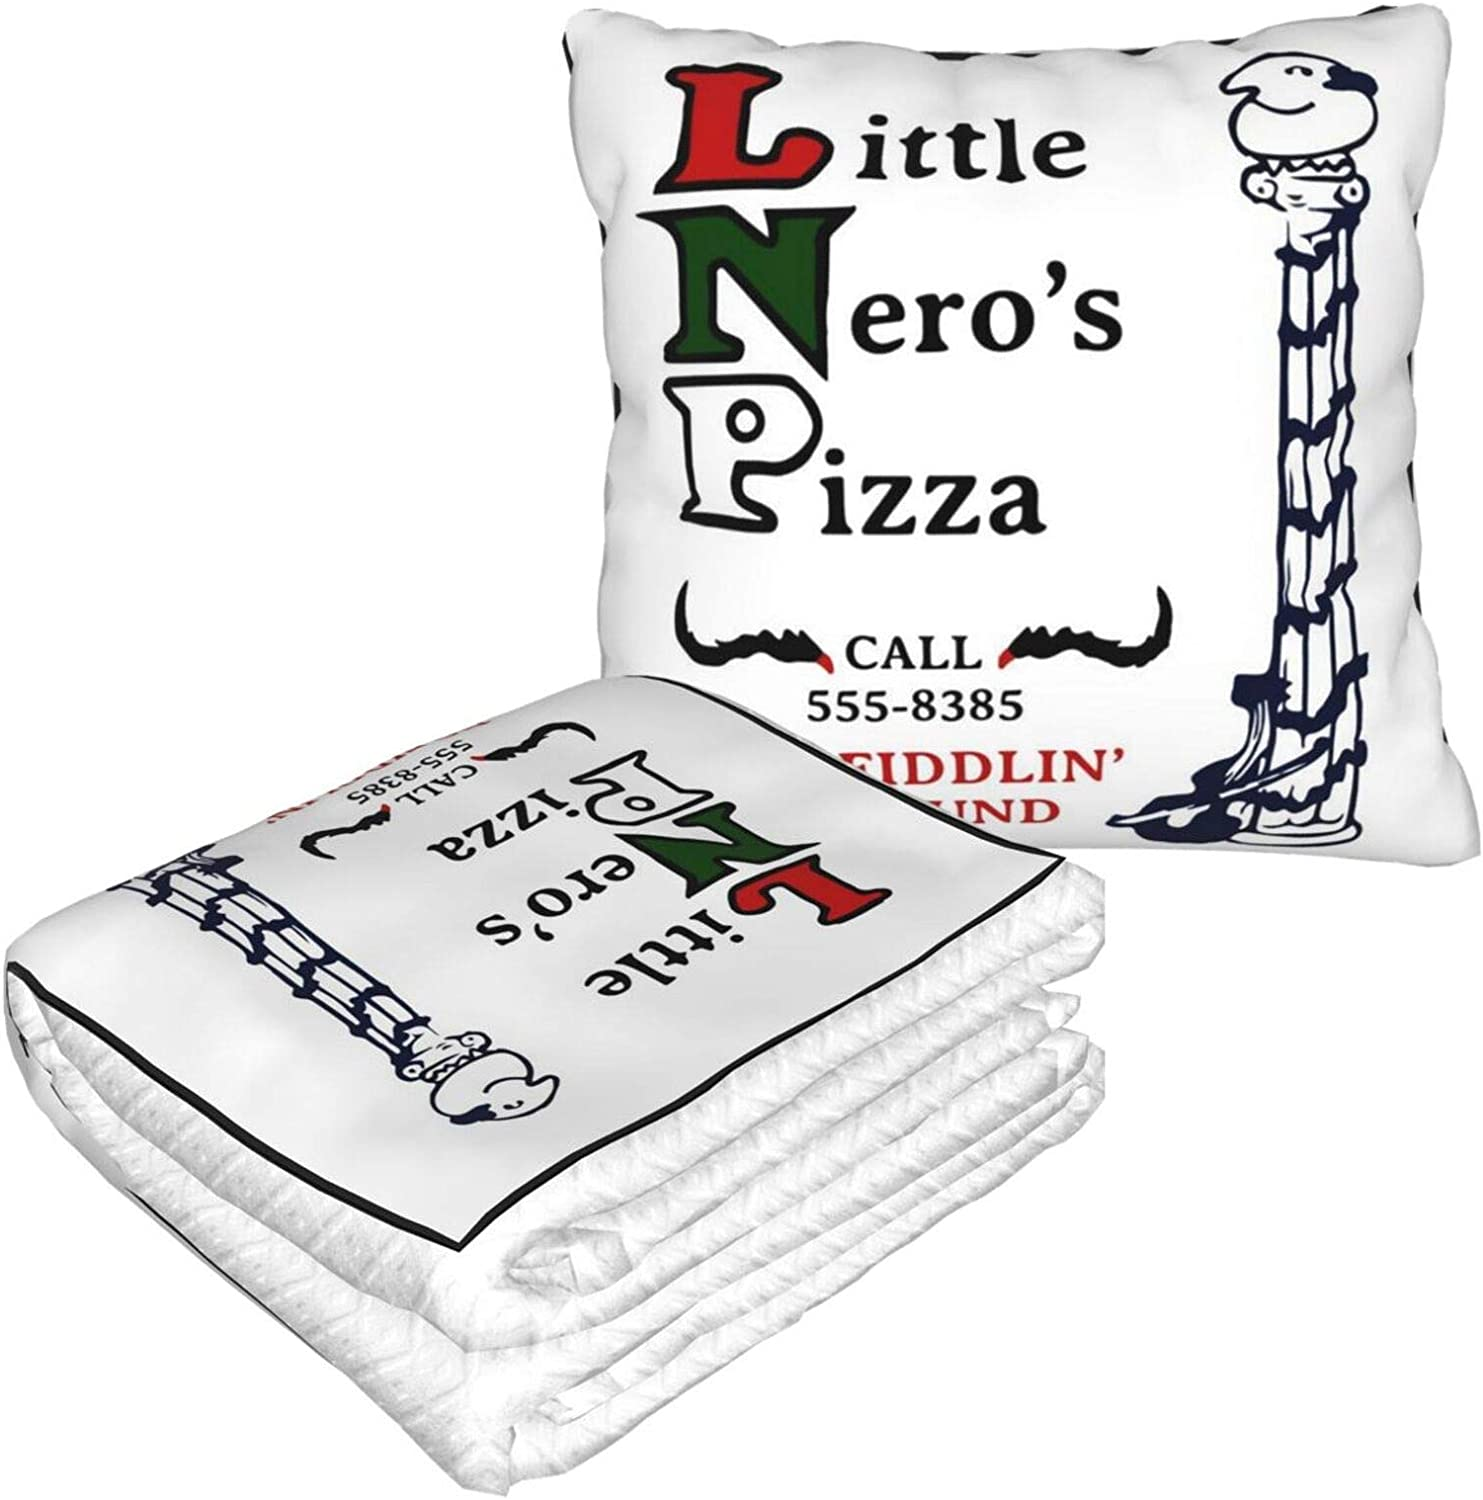 Little Neros Pizza Home Alone Super Soft Travel Blanket Blanket Cushions Throw Blanket Airplane Blanket Warm Quilt Rest